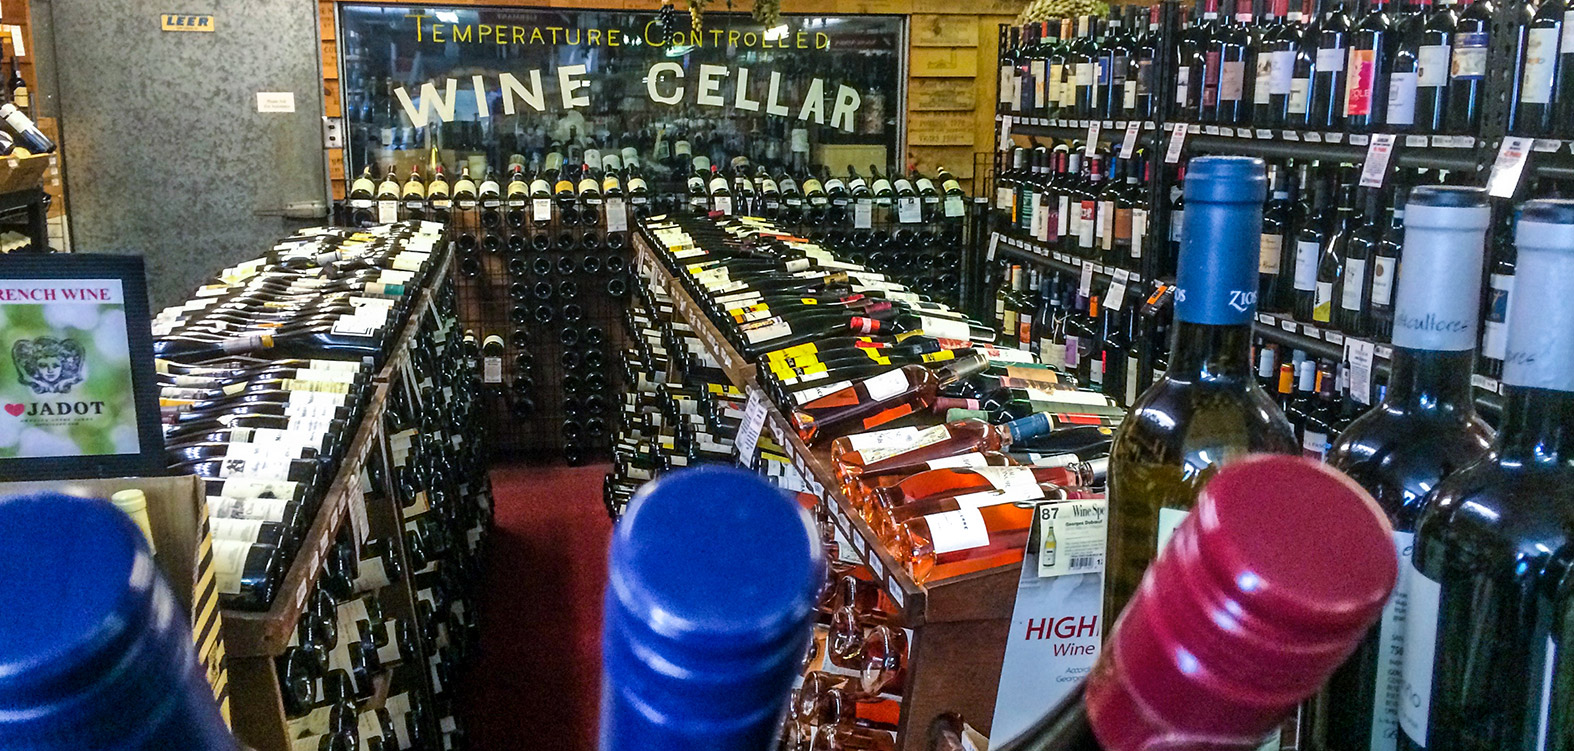 Swing by to check out our Temperature Controlled Wine Cellar or view listing below, contactfor pricing.